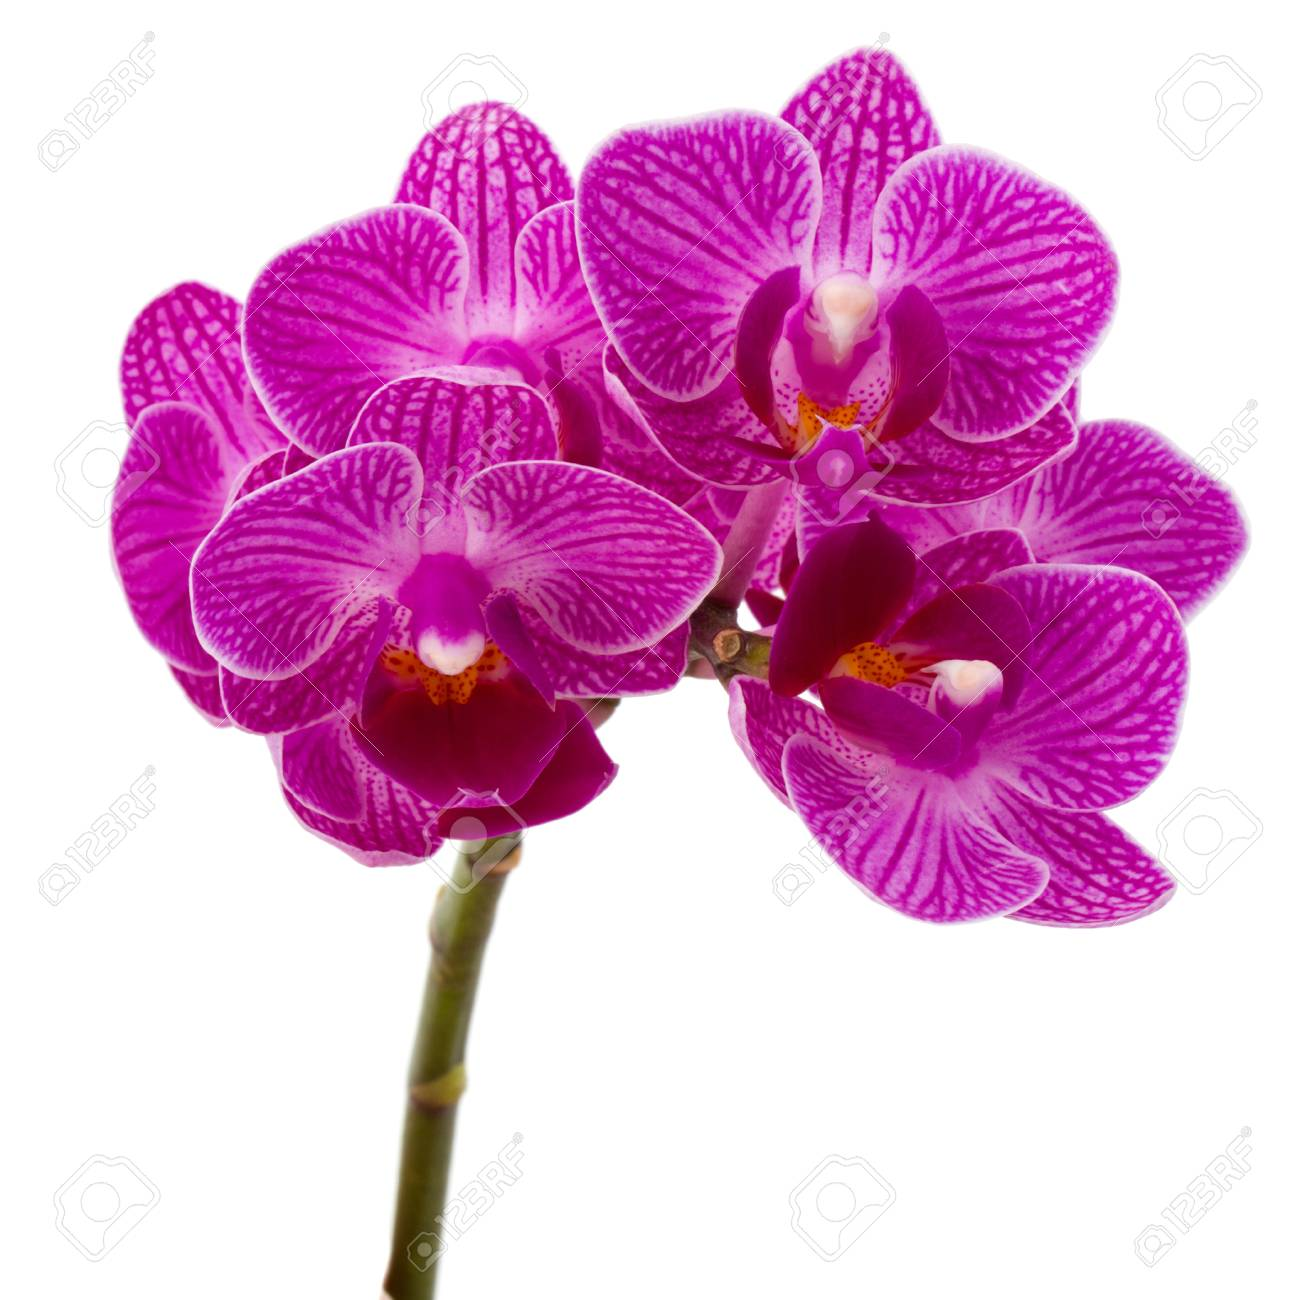 Orchid flower head bouquet isolated on white background - 48844615